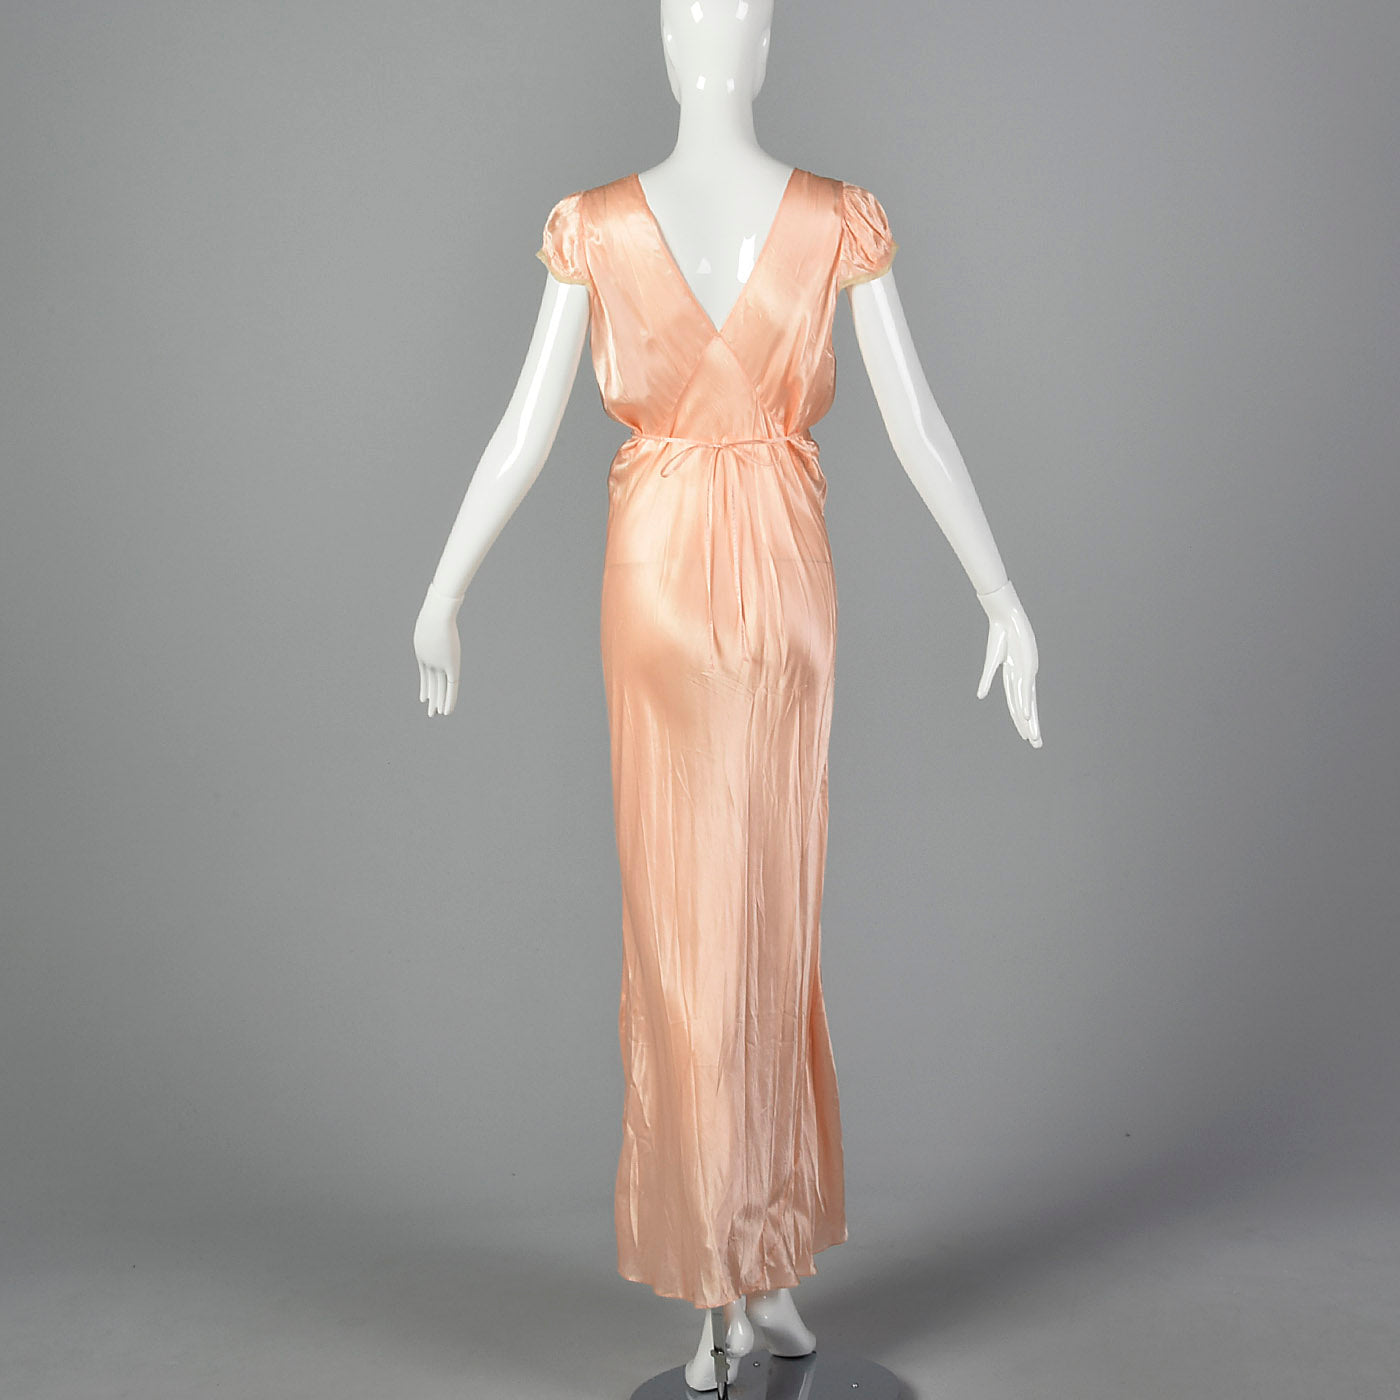 1930s Pink Satin Nightgown with Keyhole Bust